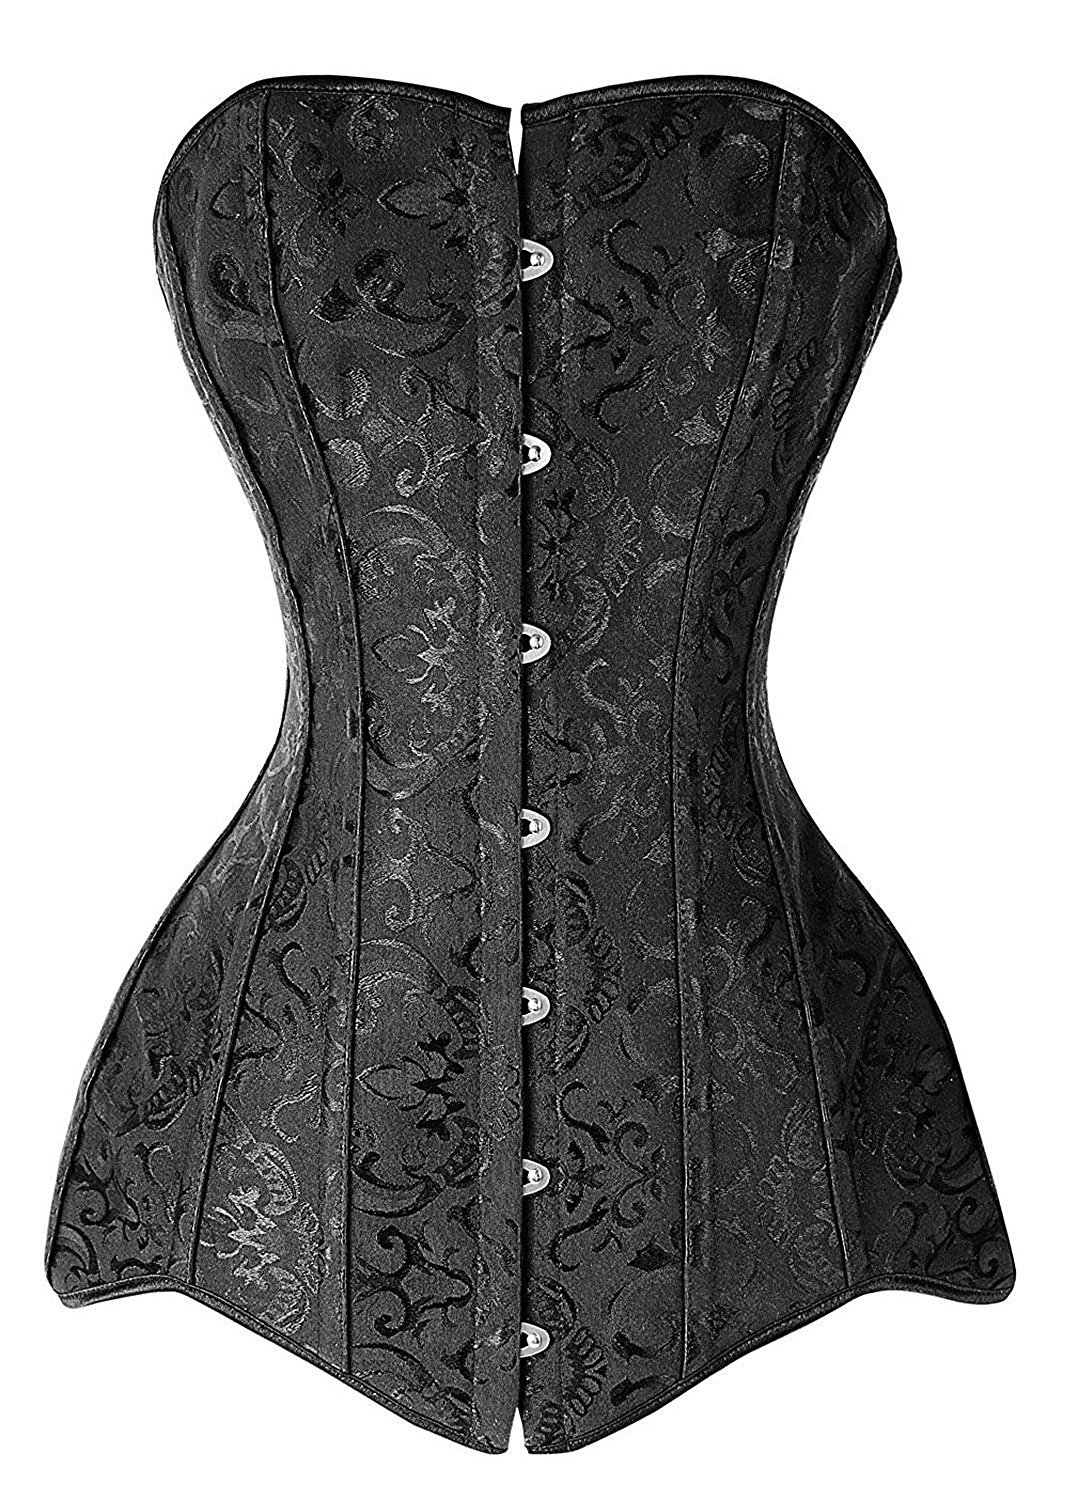 MISS MOLY Women's Fashion Faux Leather Buckle Steel Boned Underbust Vest Corset Plus Size (6XL, 16 Steel Long Torso)